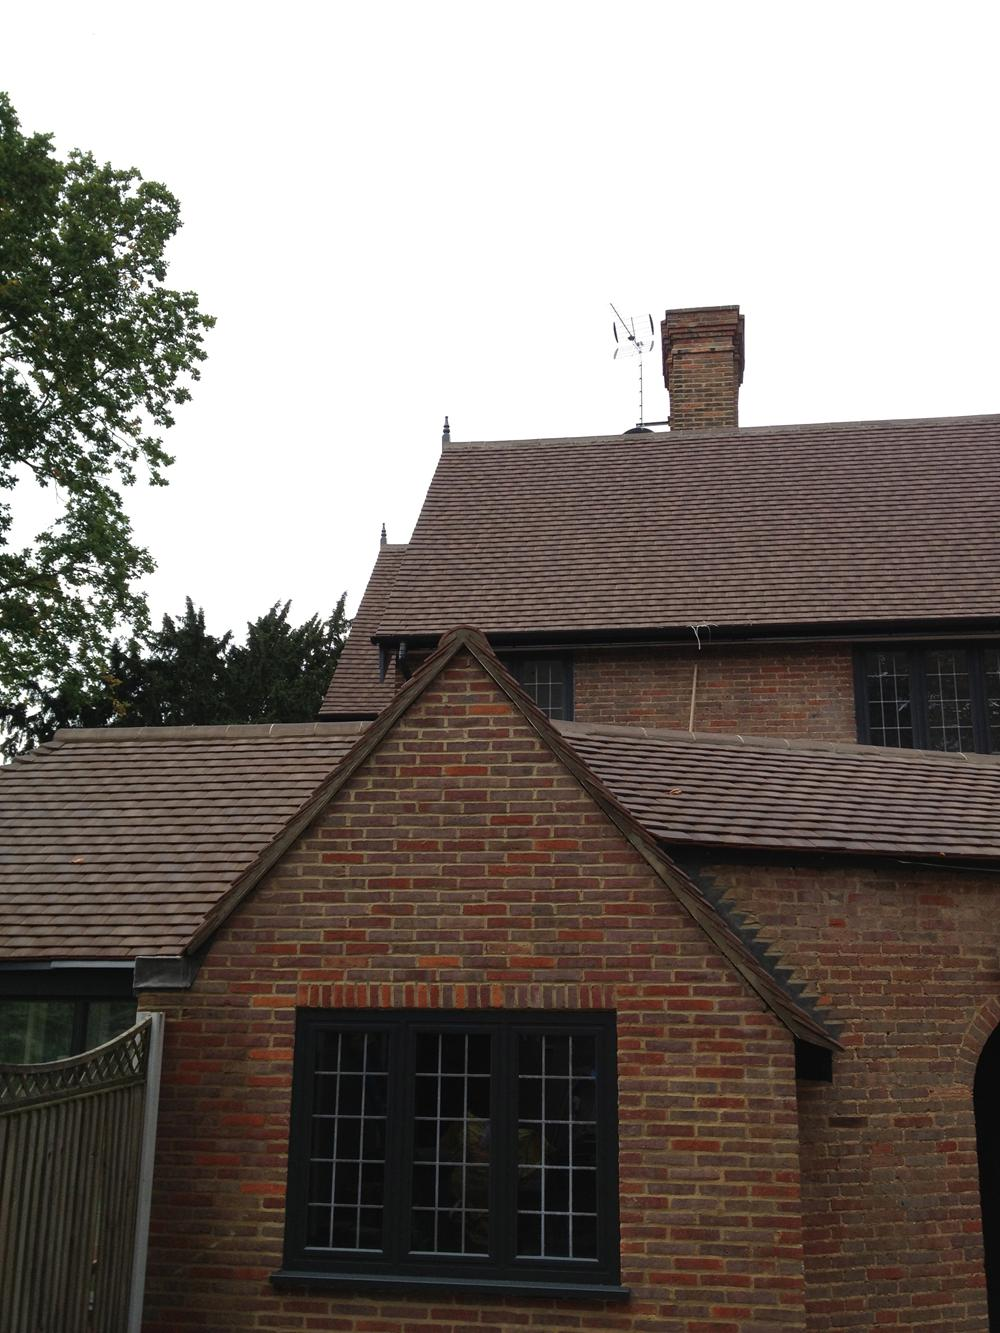 Clay Roof Tiles Harmonising With Victorian Brickwork